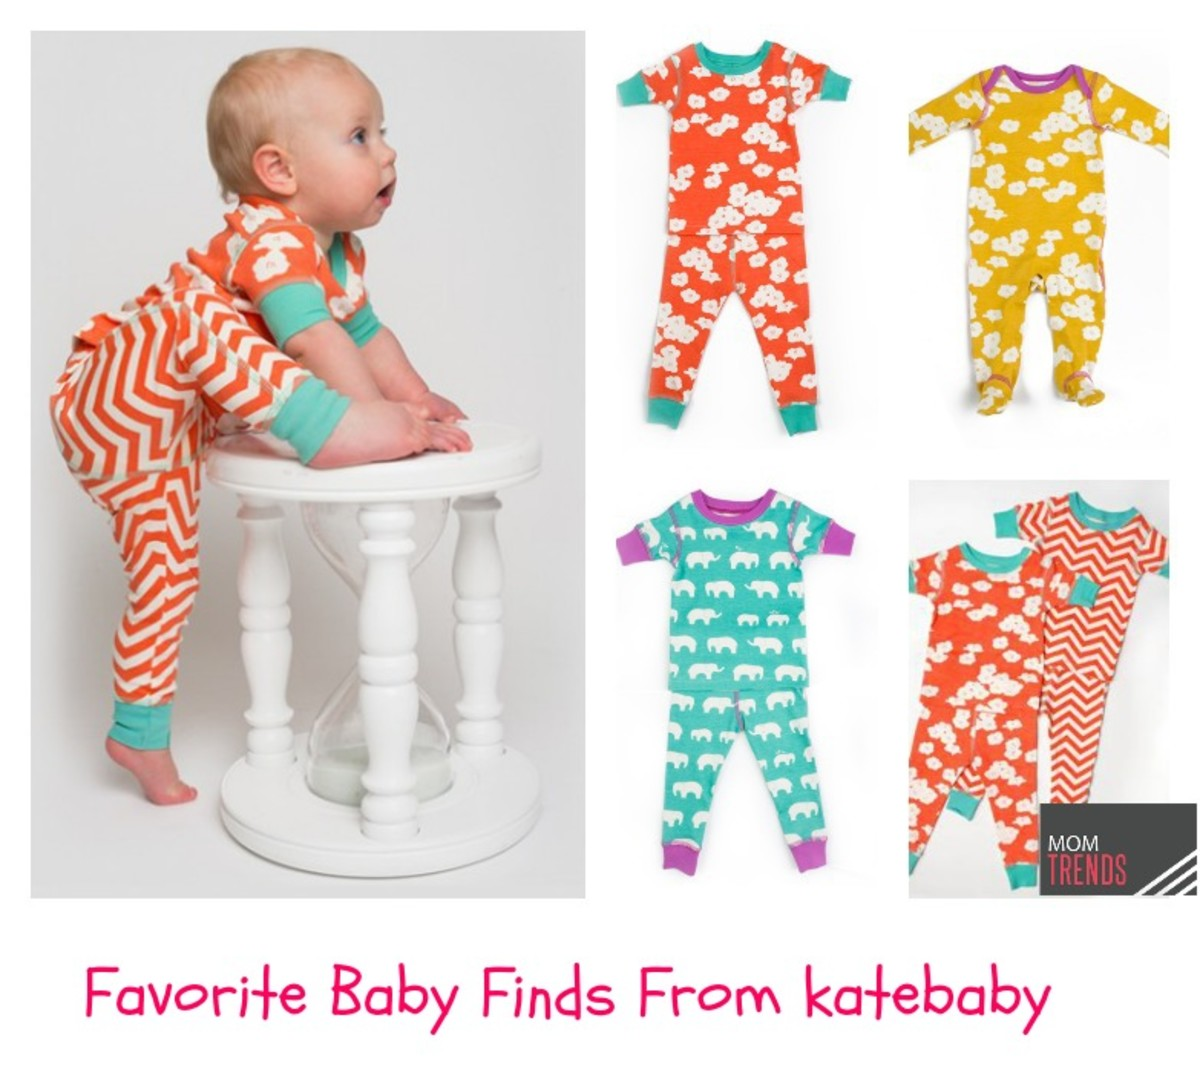 katebaby review